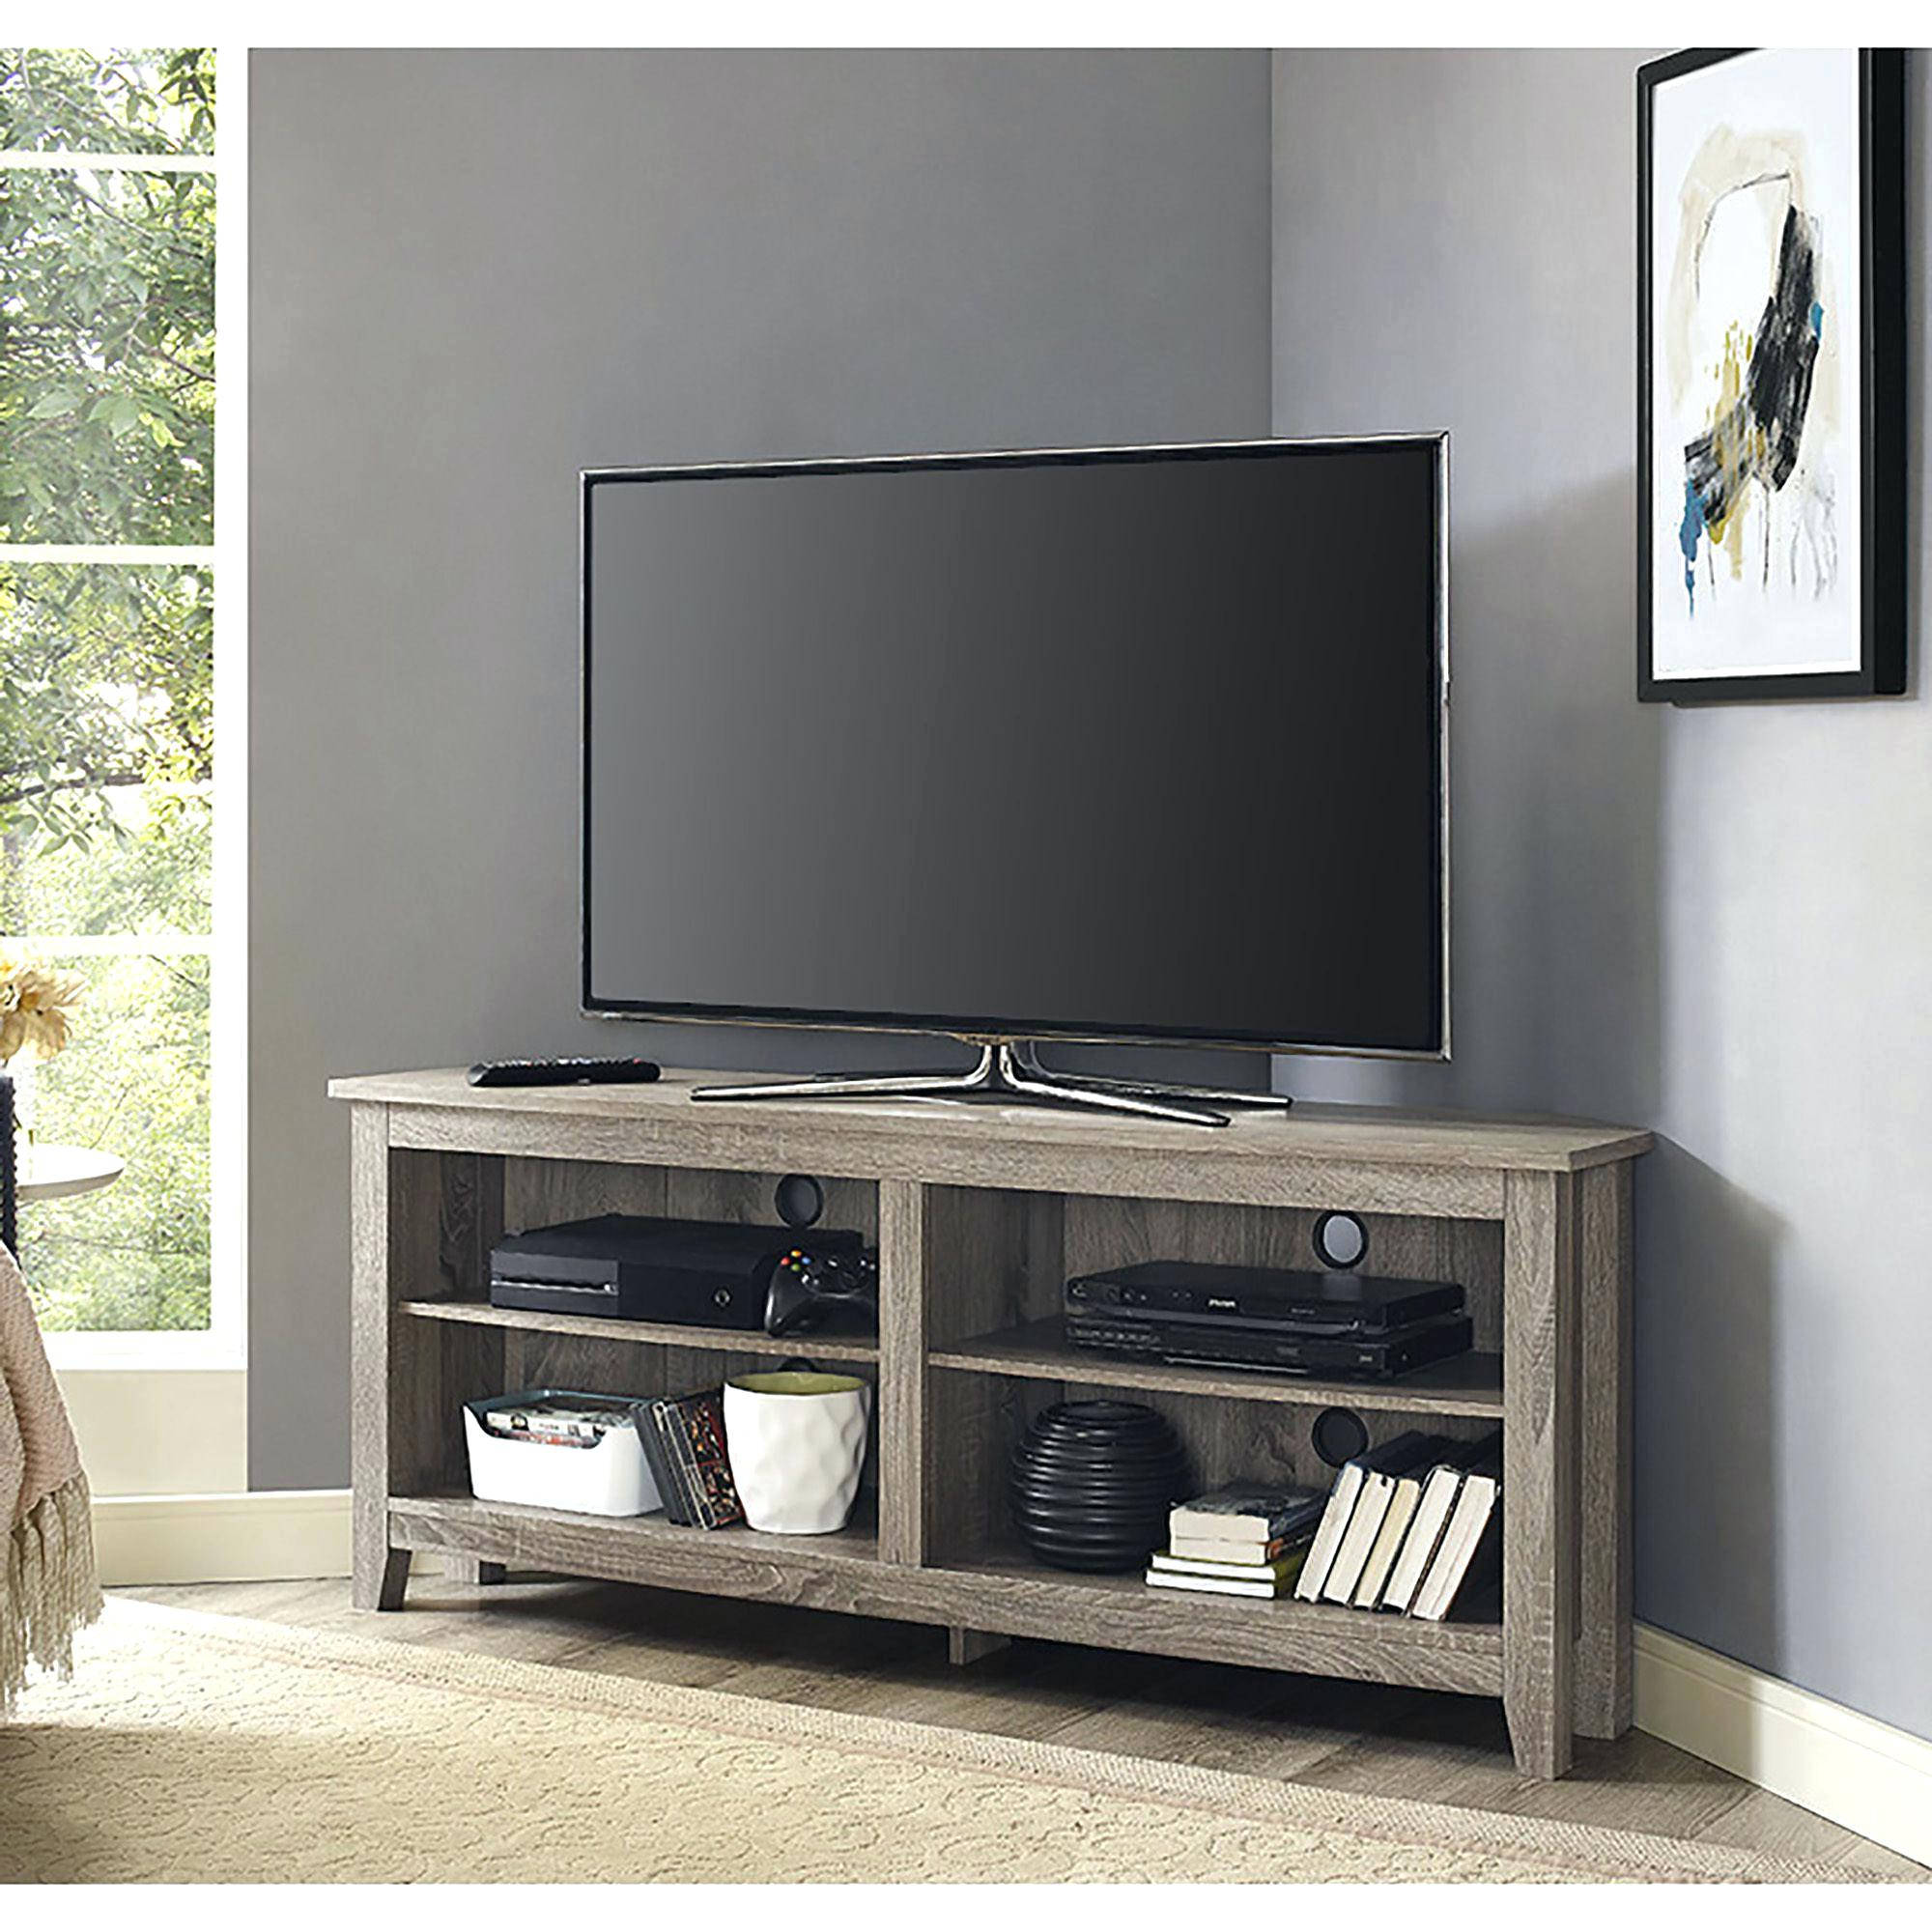 Most Current 50 Inch Corner Tv Cabinets In Corner Tv Stand For 50 Inch Tvs Up To Fit South Shore City Life (View 12 of 20)